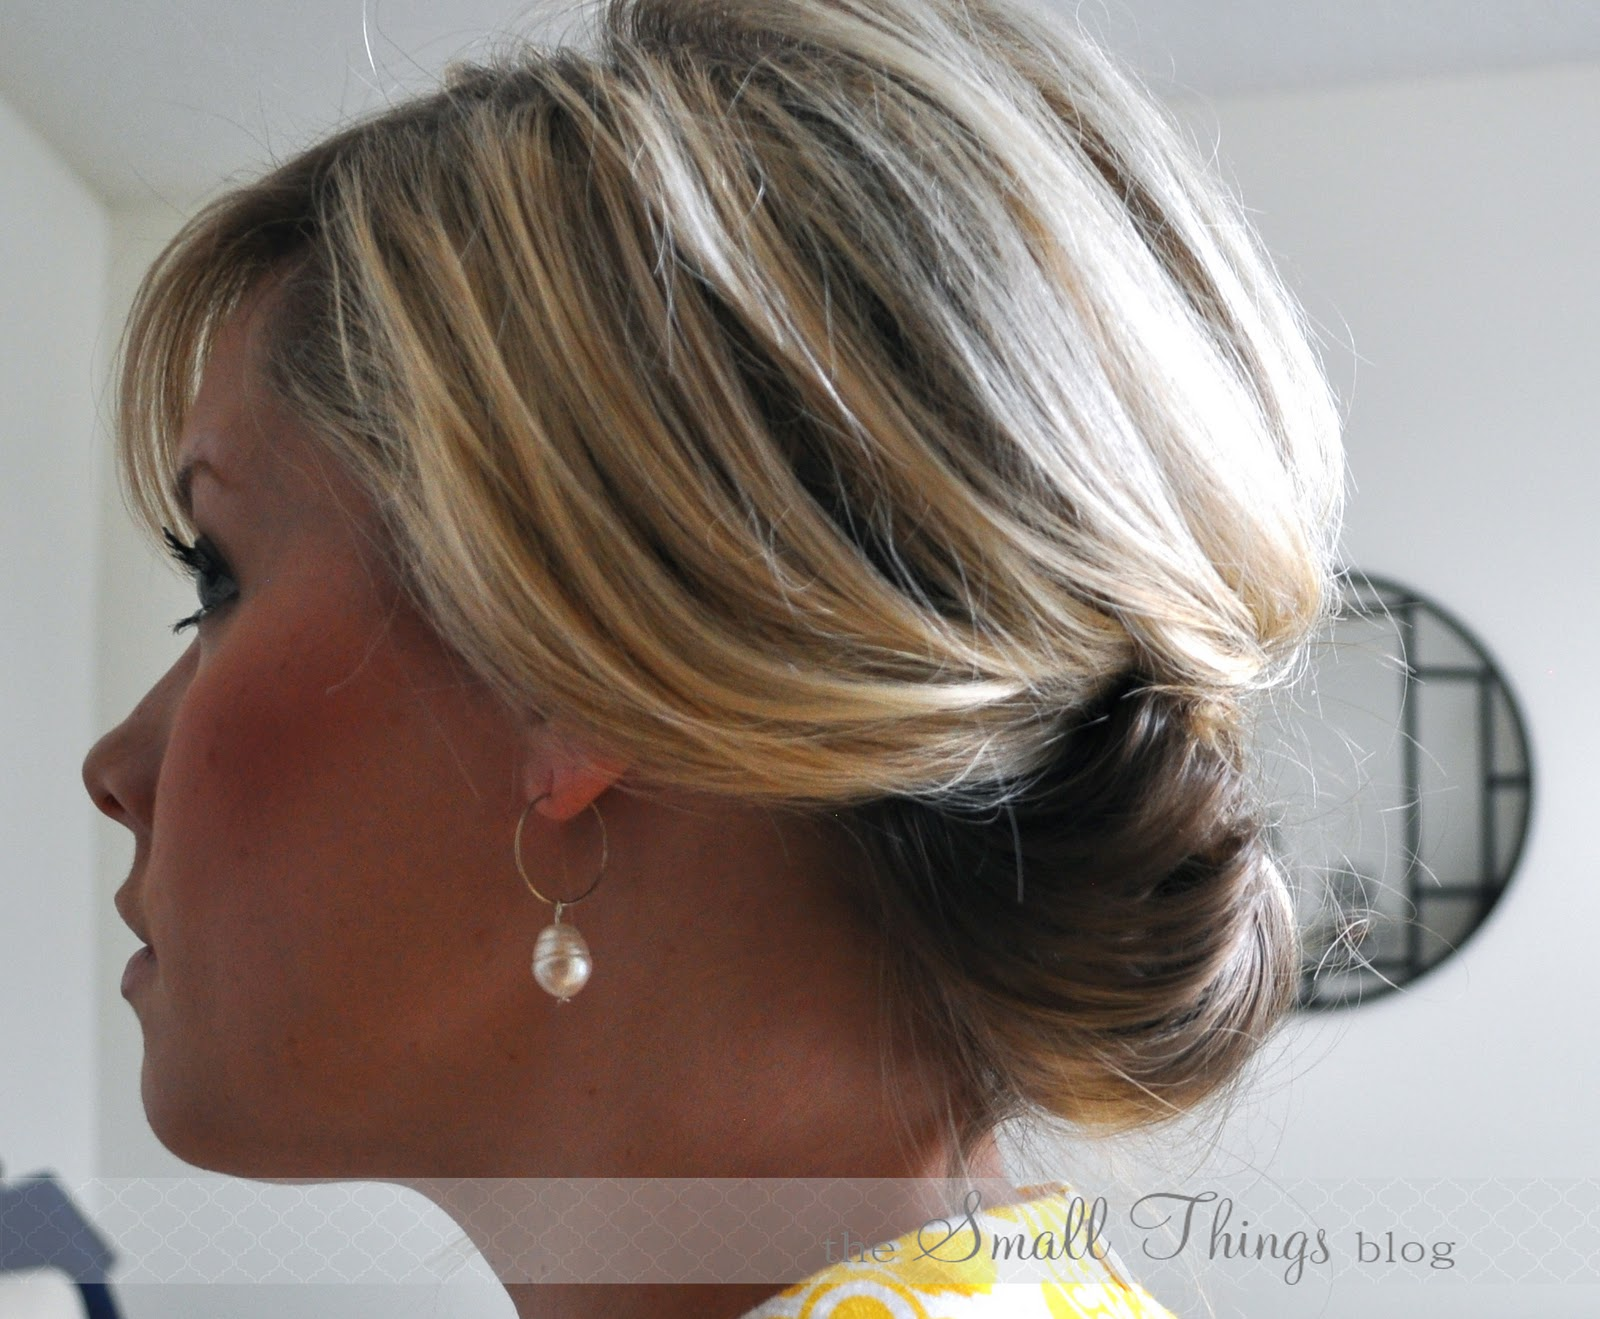 Hair Updos For Short Length Hair: The Small Things Blog